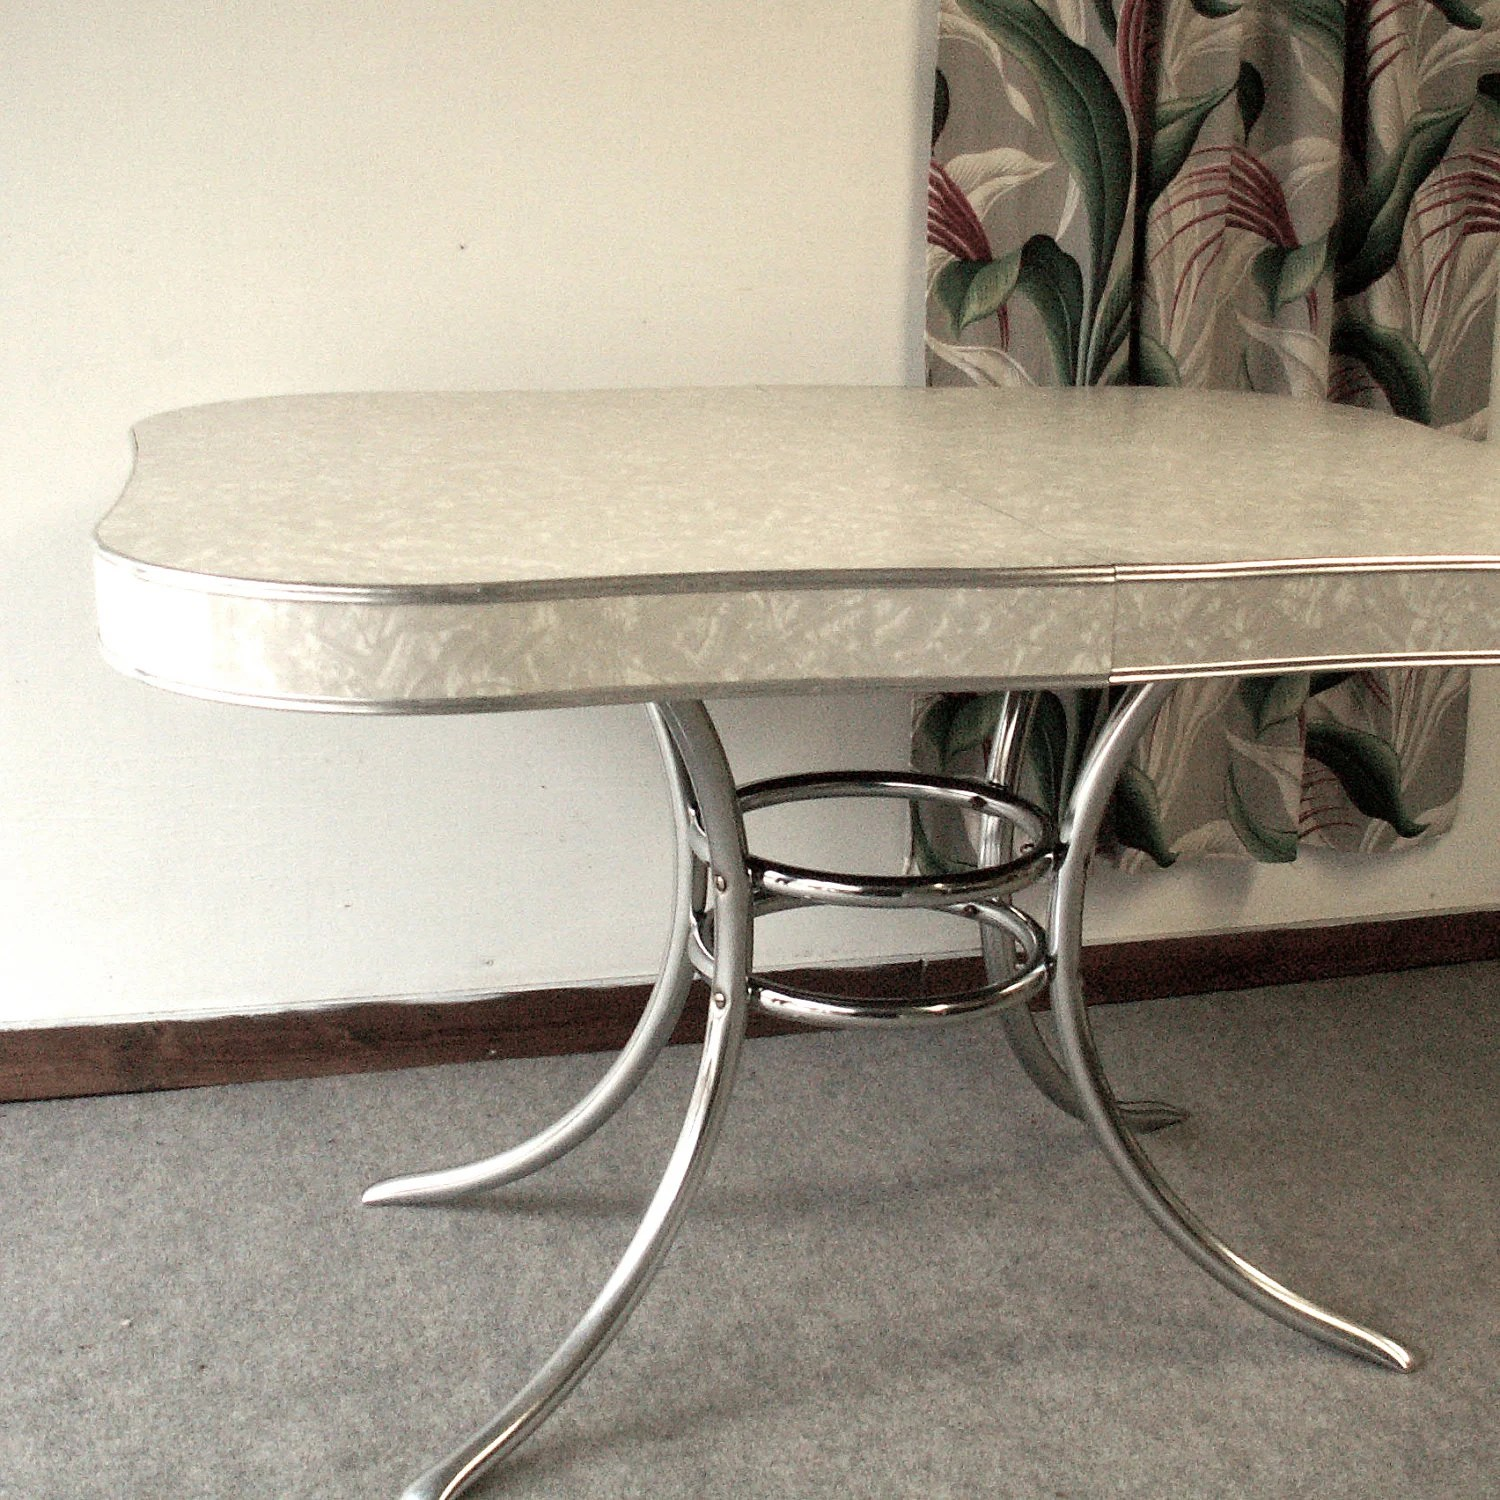 vintage s formica and chrome kitchen s kitchen table Vintage s Formica and Chrome Kitchen Table zoom